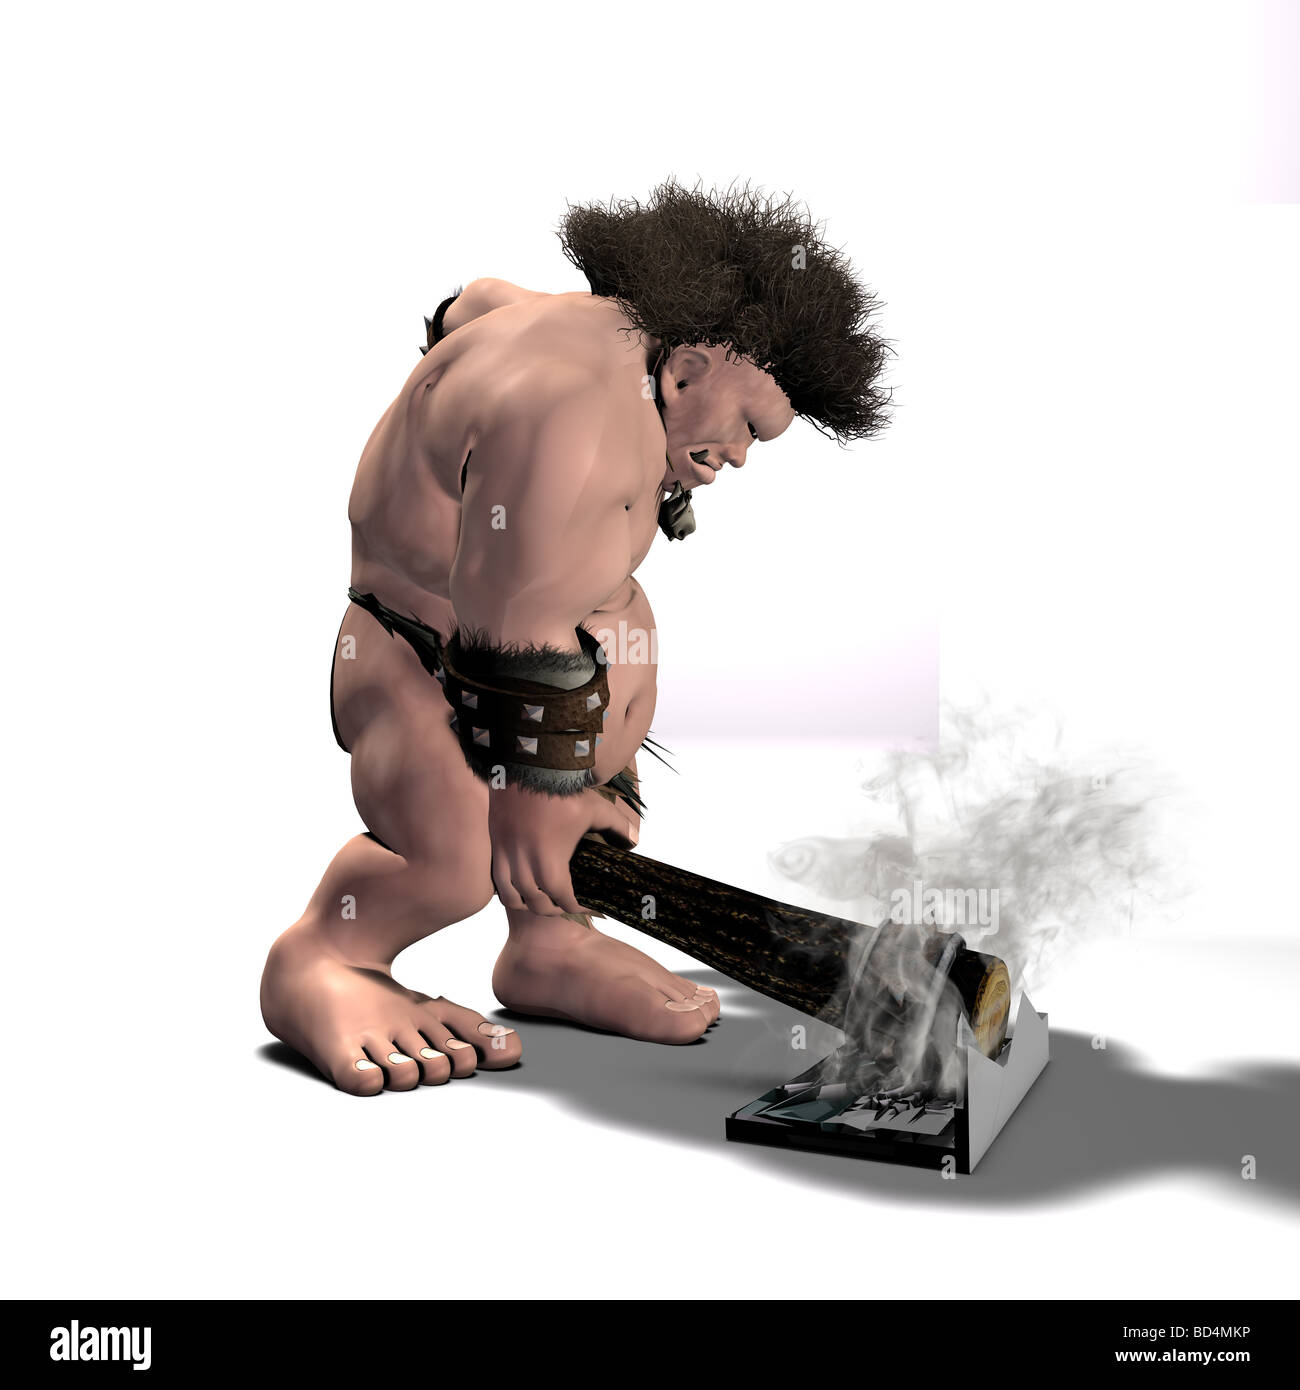 A One-Eyed Caveman 'repairing' his new laptop. He seems to have gotten frustrated with the operating system. - Stock Image